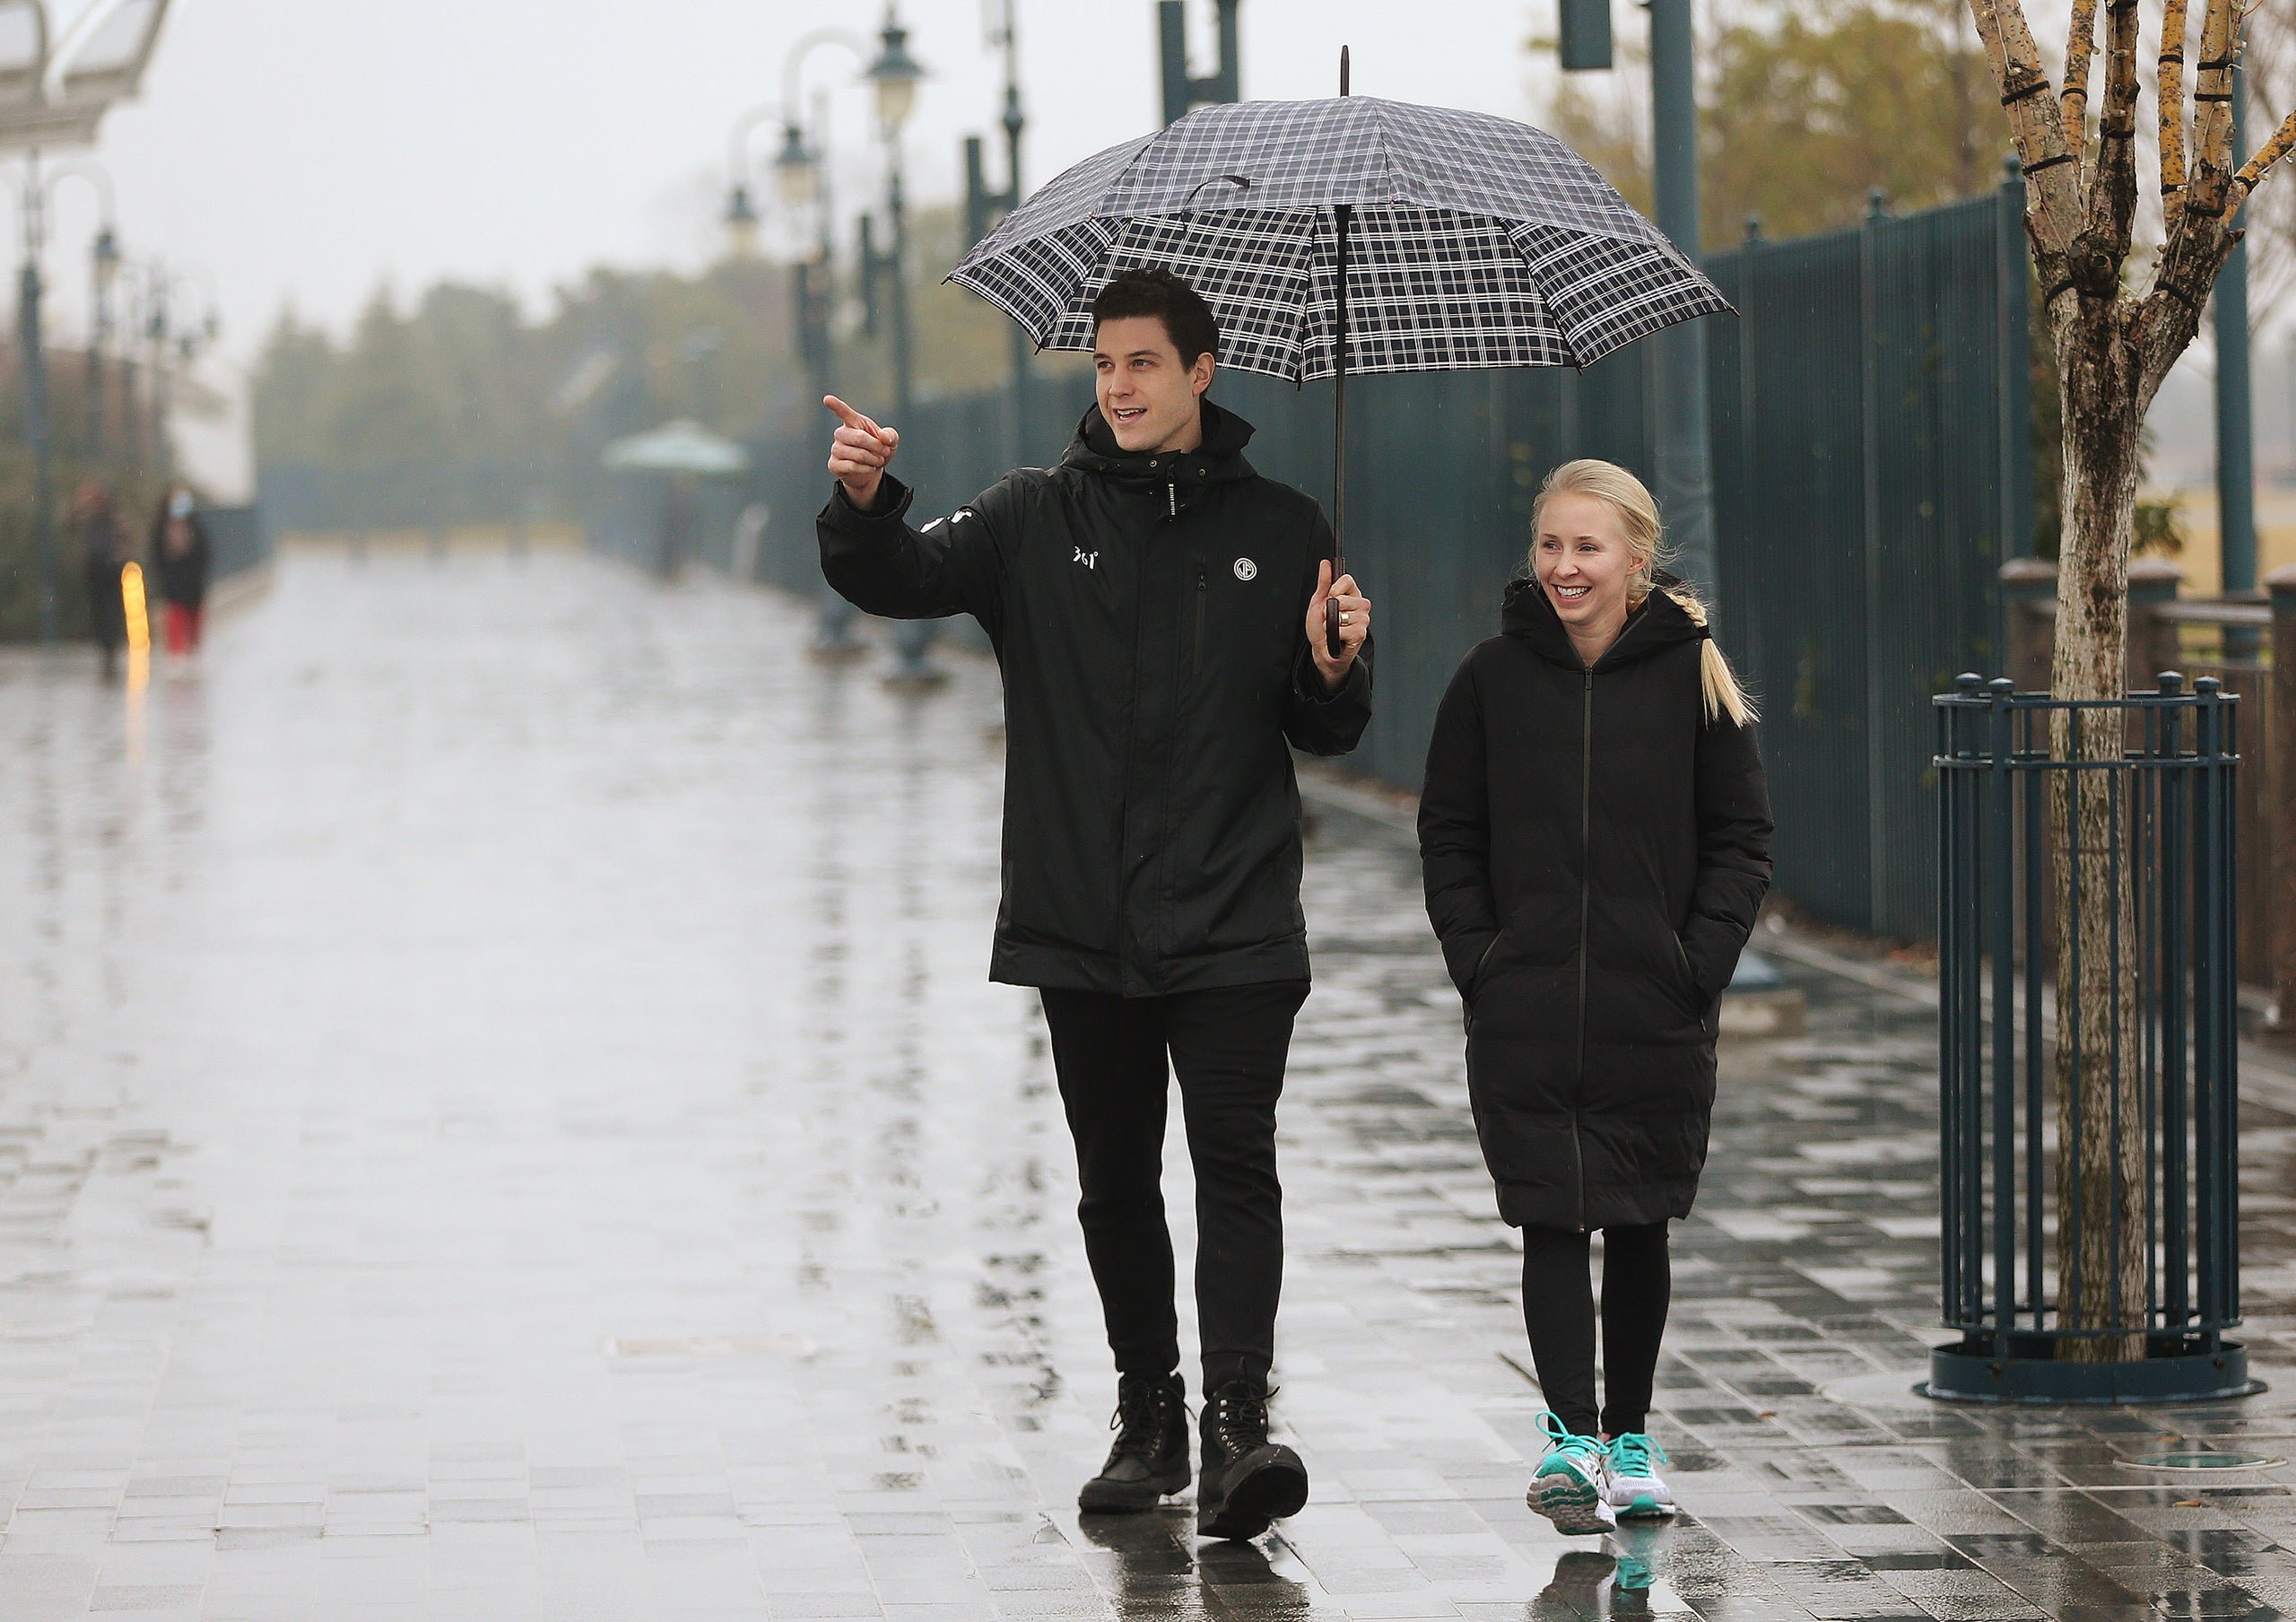 Jeffrey D. Allred, Deseret News Jimmer Fredette walks with his wife, Whitney, to Disneyland in Shanghai, China, on Jan 20, 2018. Fredette is a former BYU Cougar and now plays for the Shanghai Sharks in the Chinese Basketball Association.